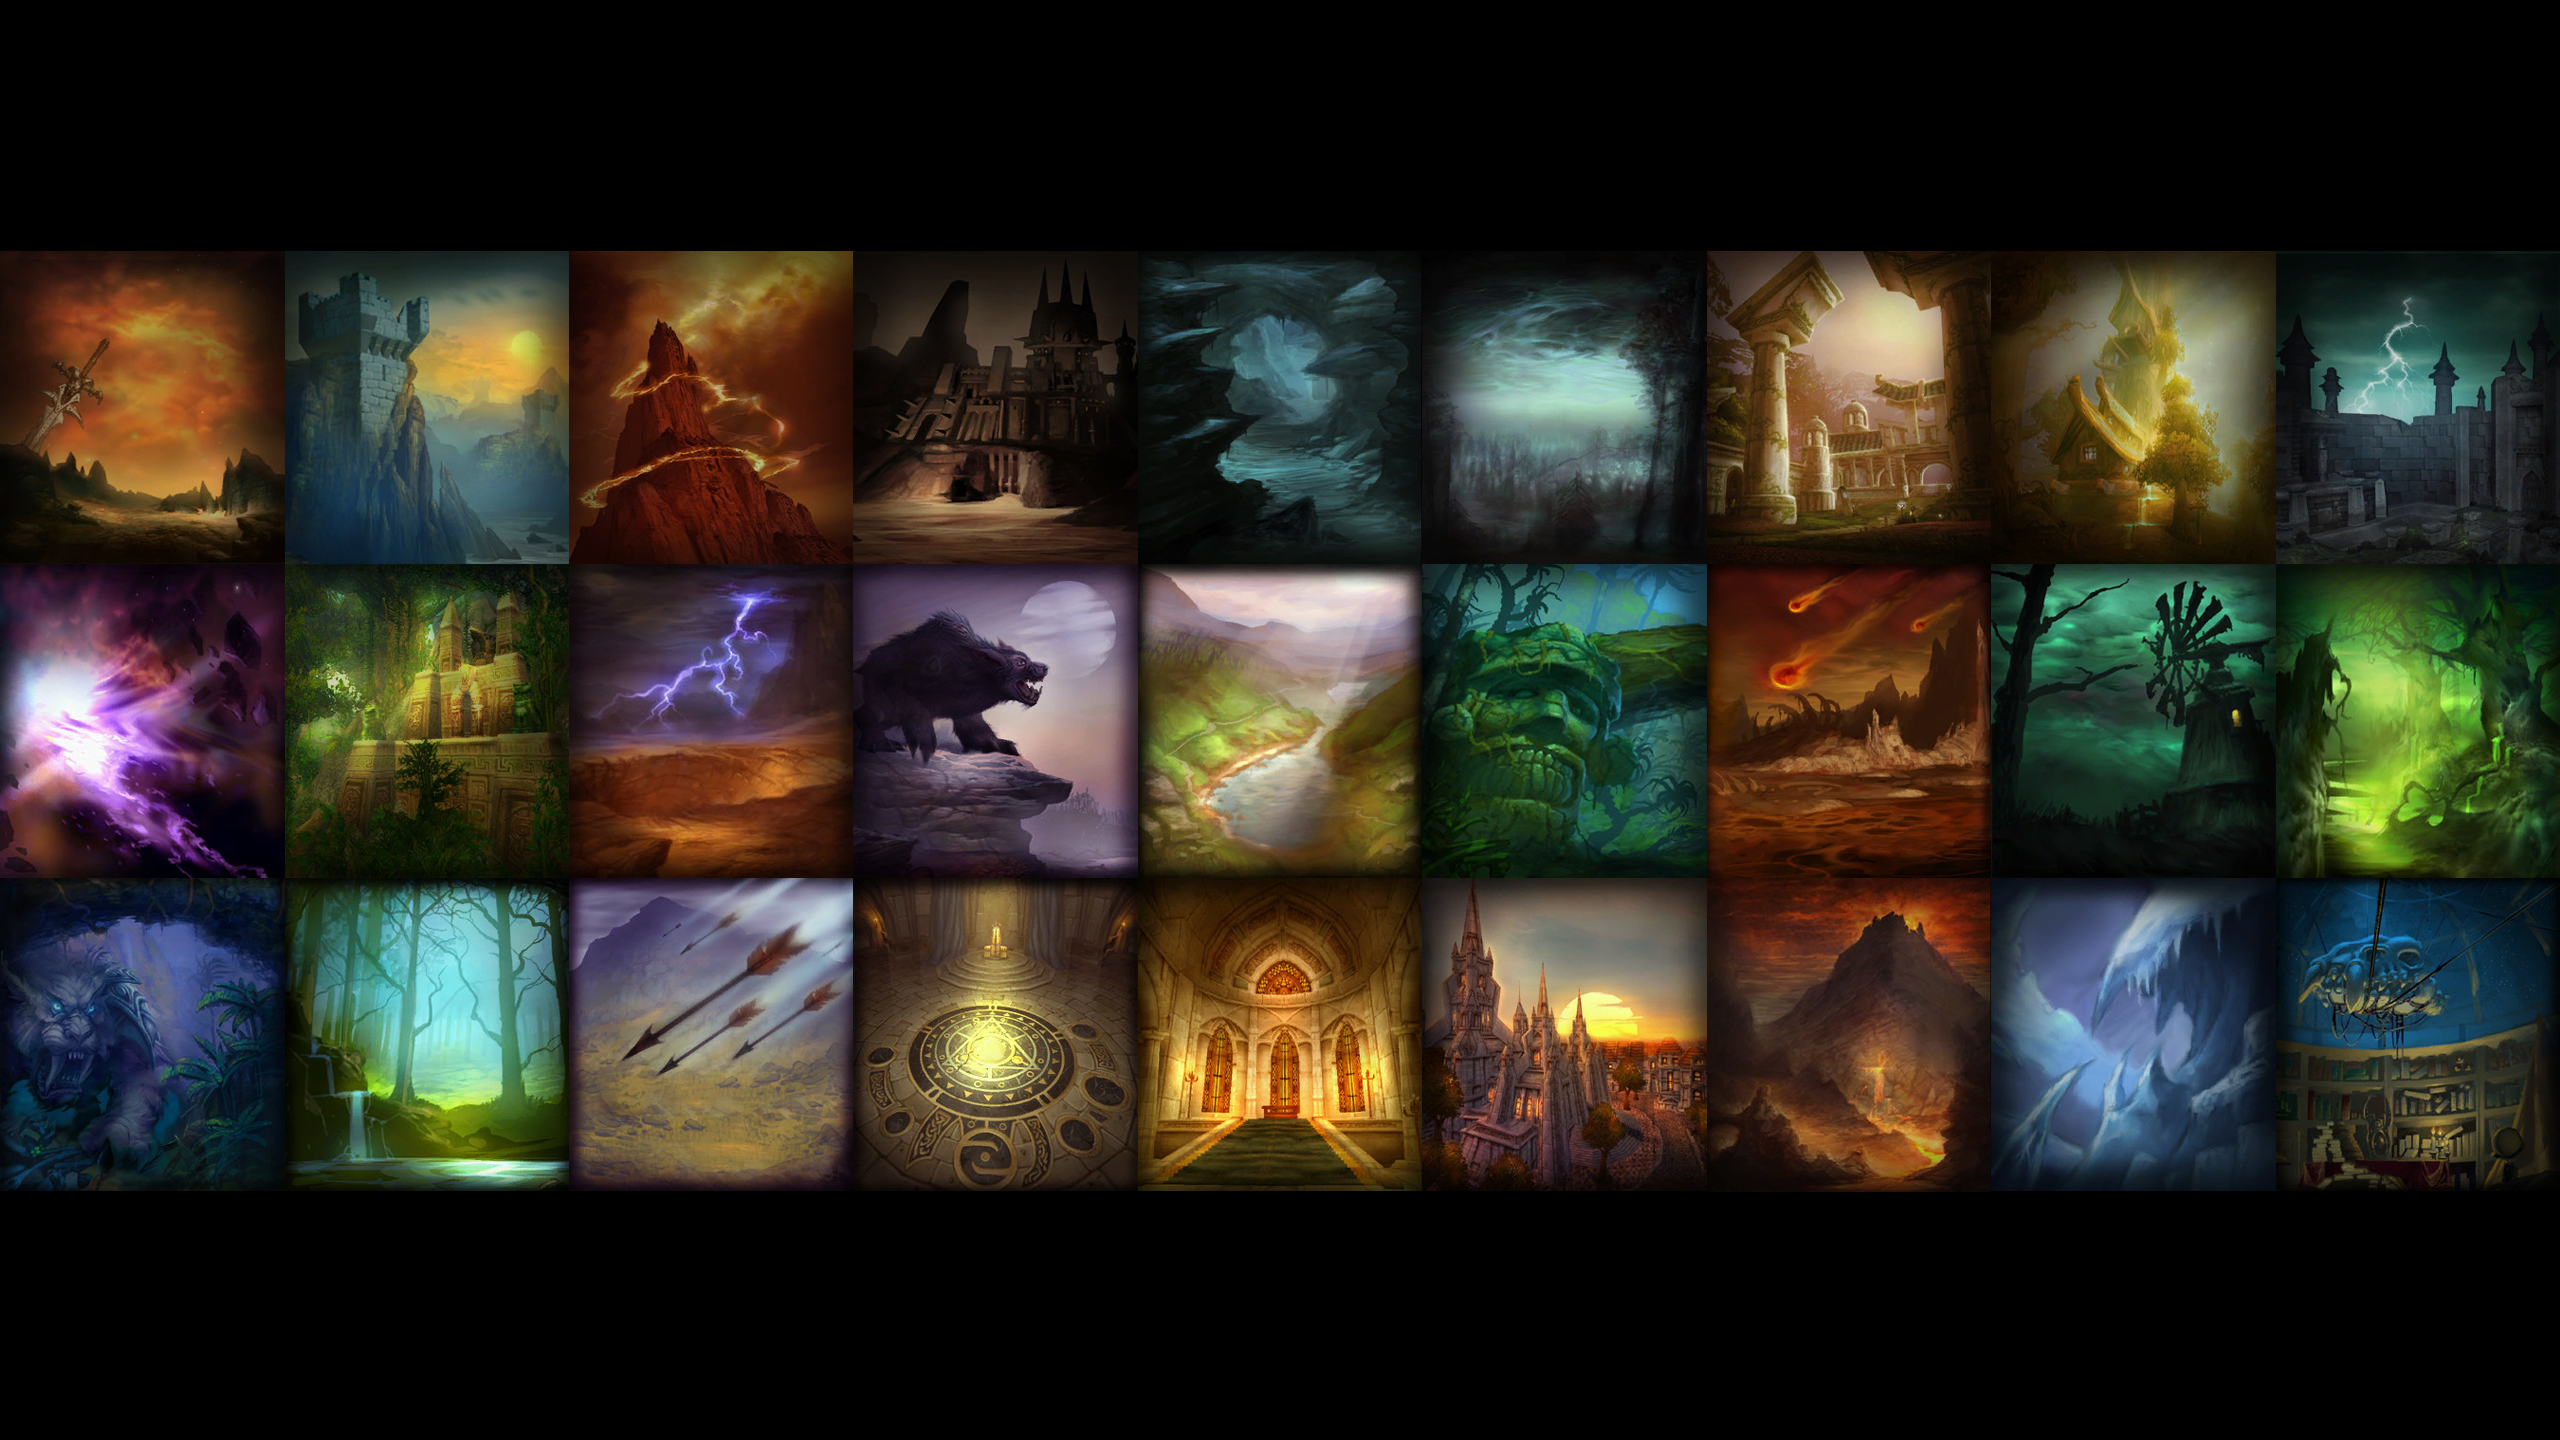 Wallpaper] All Classic WoW Talent Backgrounds classicwow 2560x1440